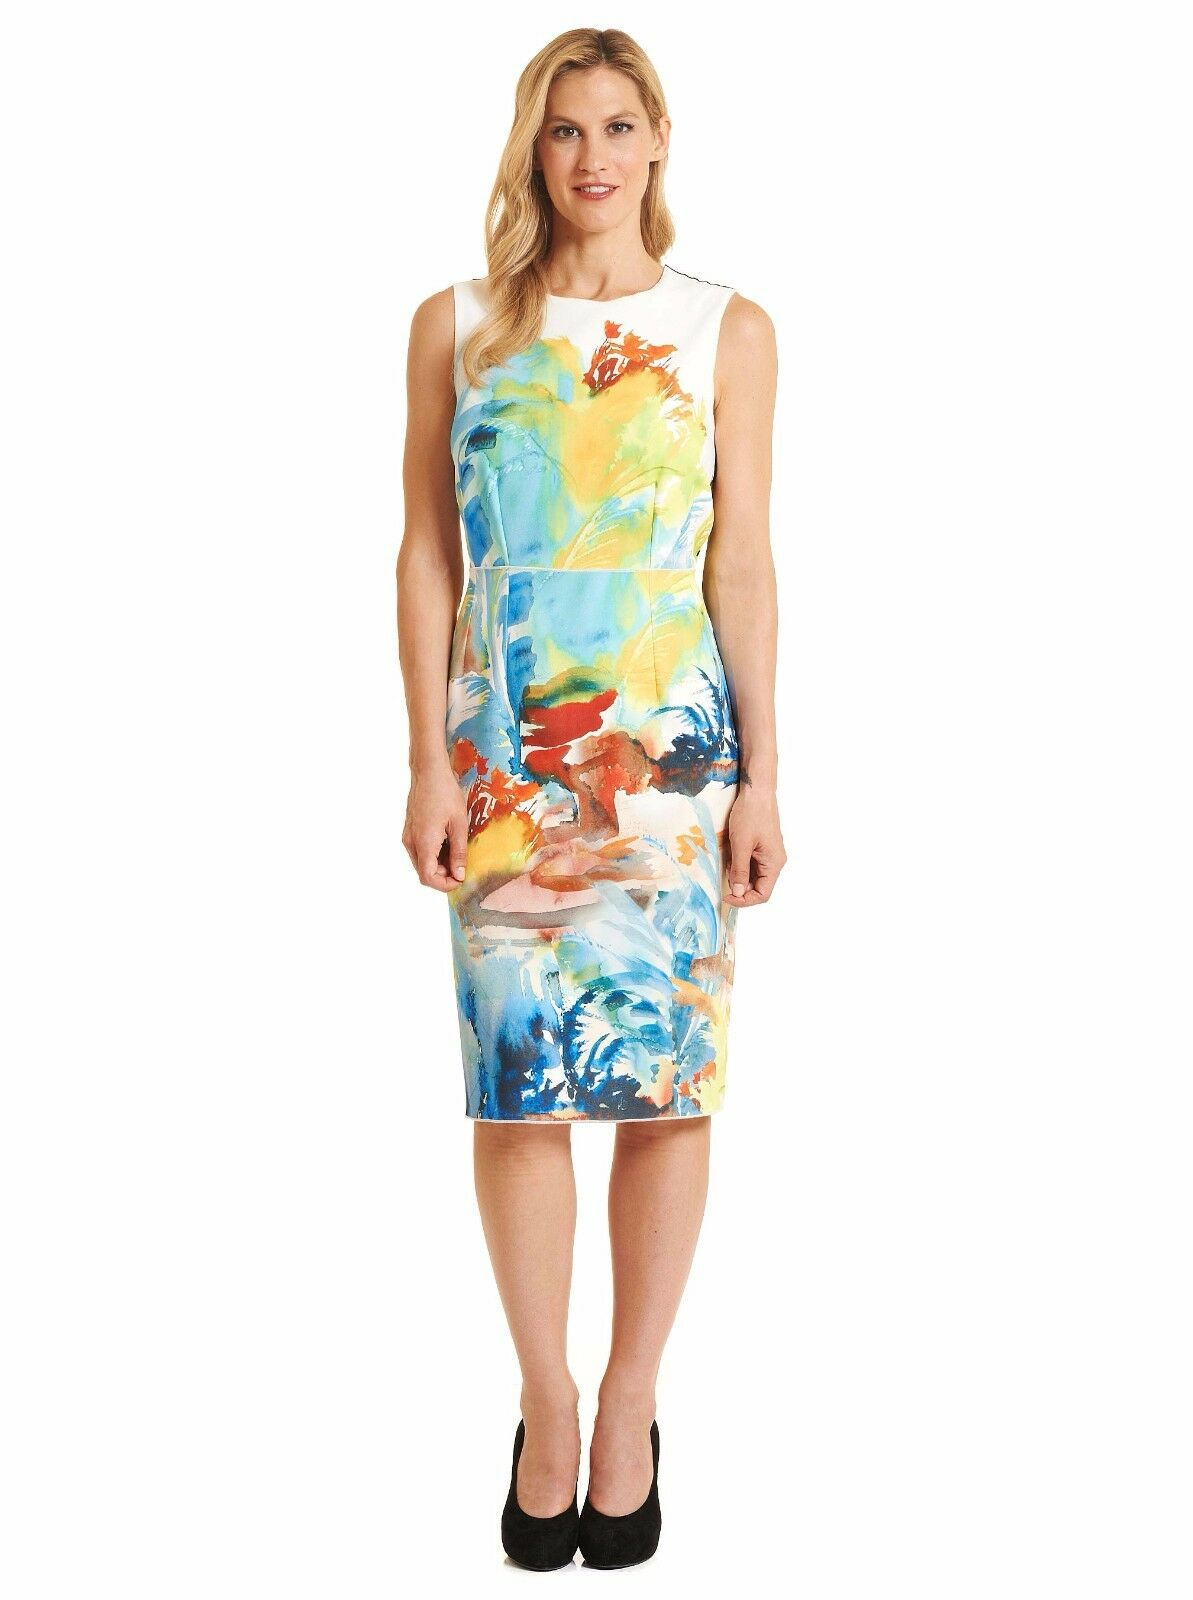 ROBERT GRAHAM WOMEN'S TEAGAN SLEEVELESS DRESS MSRP  428 428 428 NWT 683883